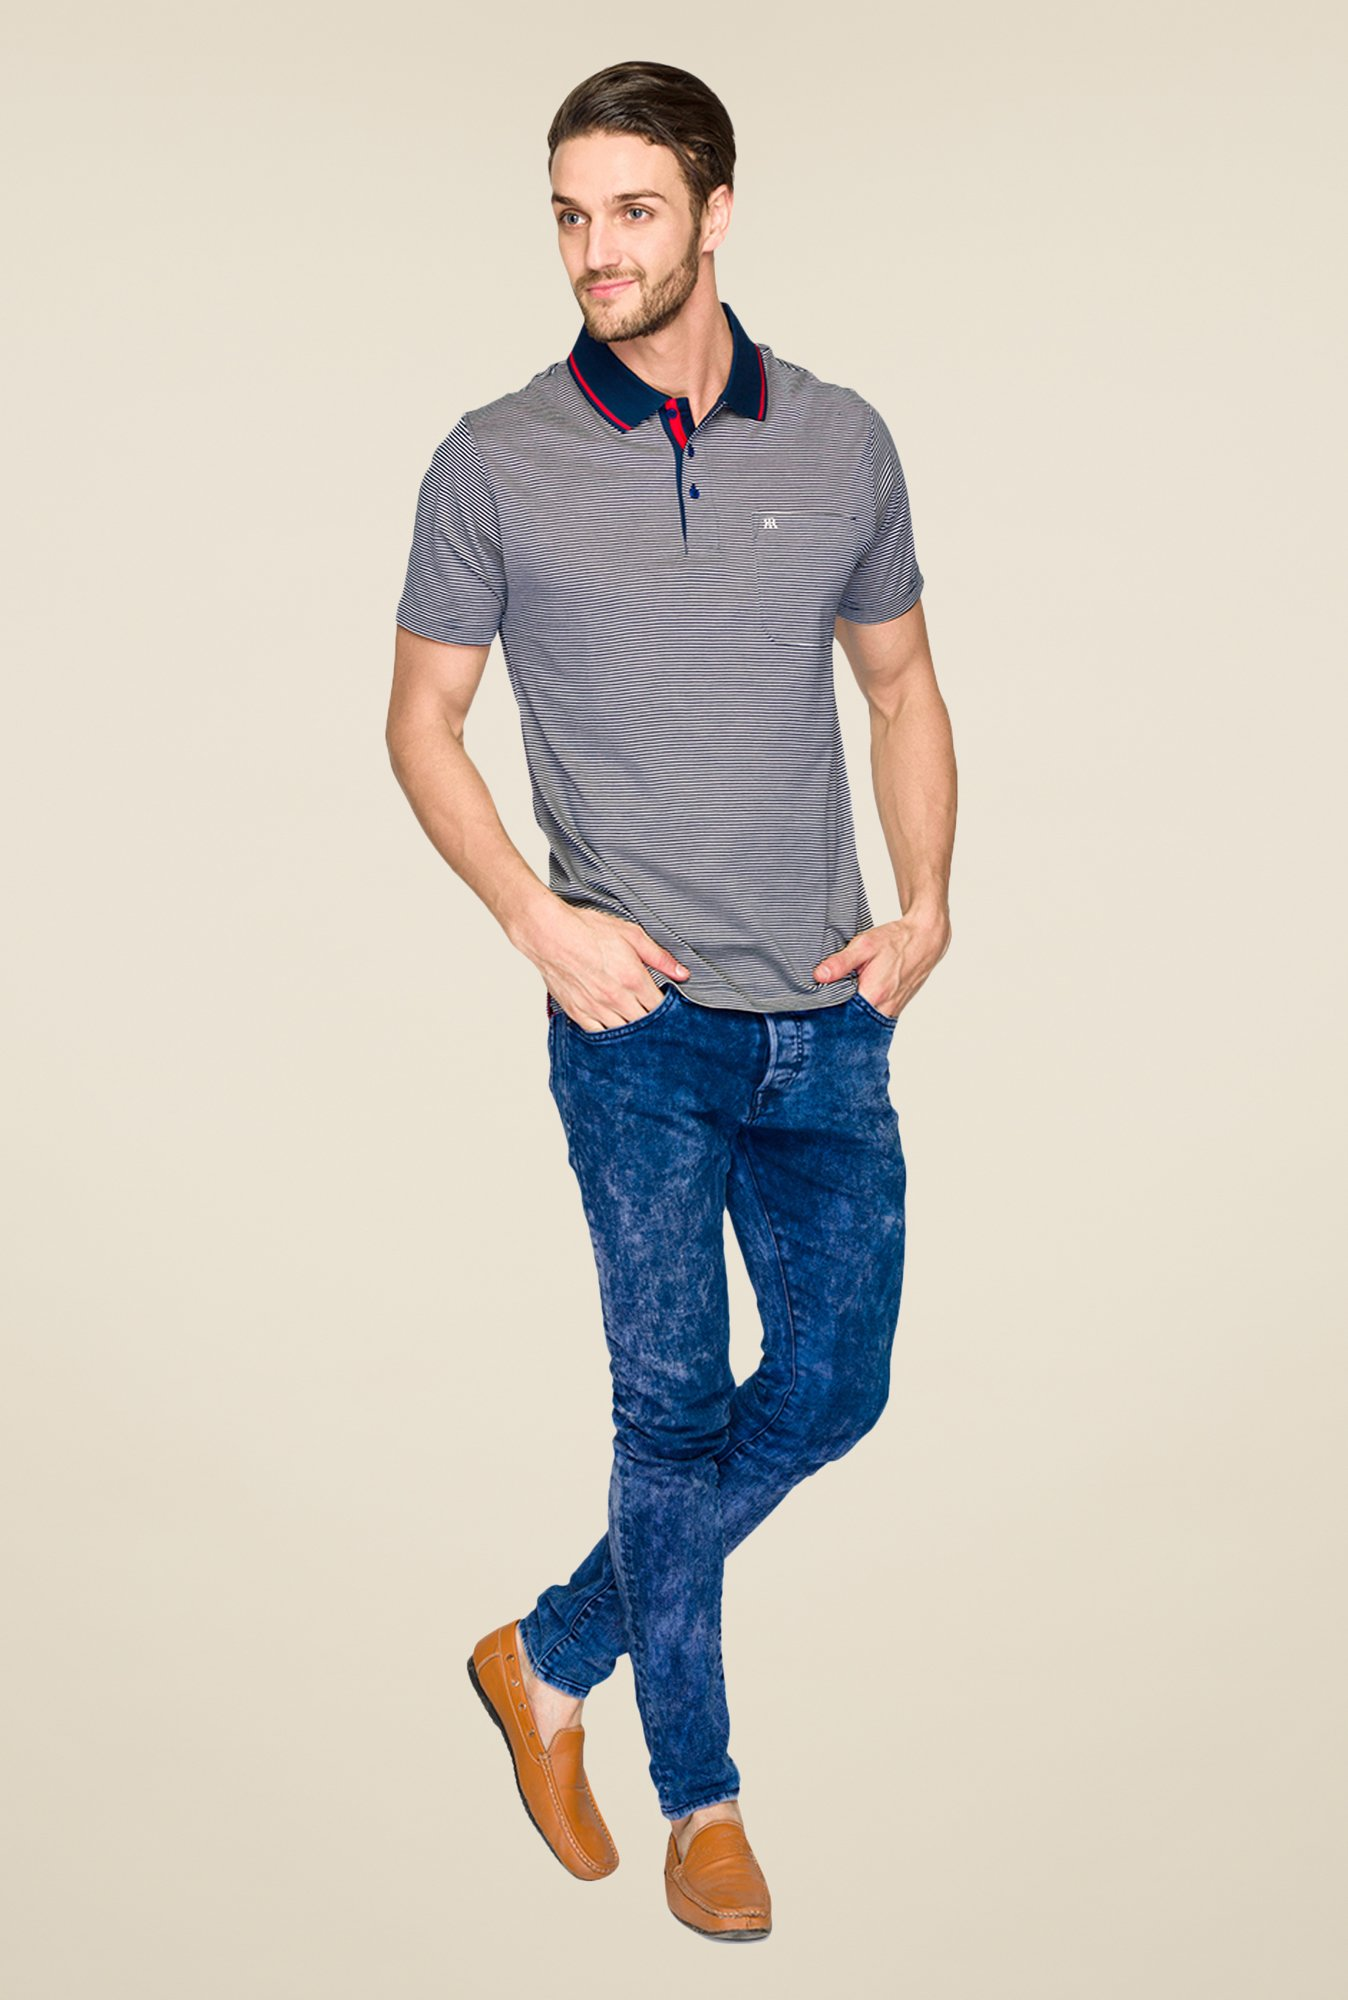 Raymond Dark Blue Striped Polo T Shirt